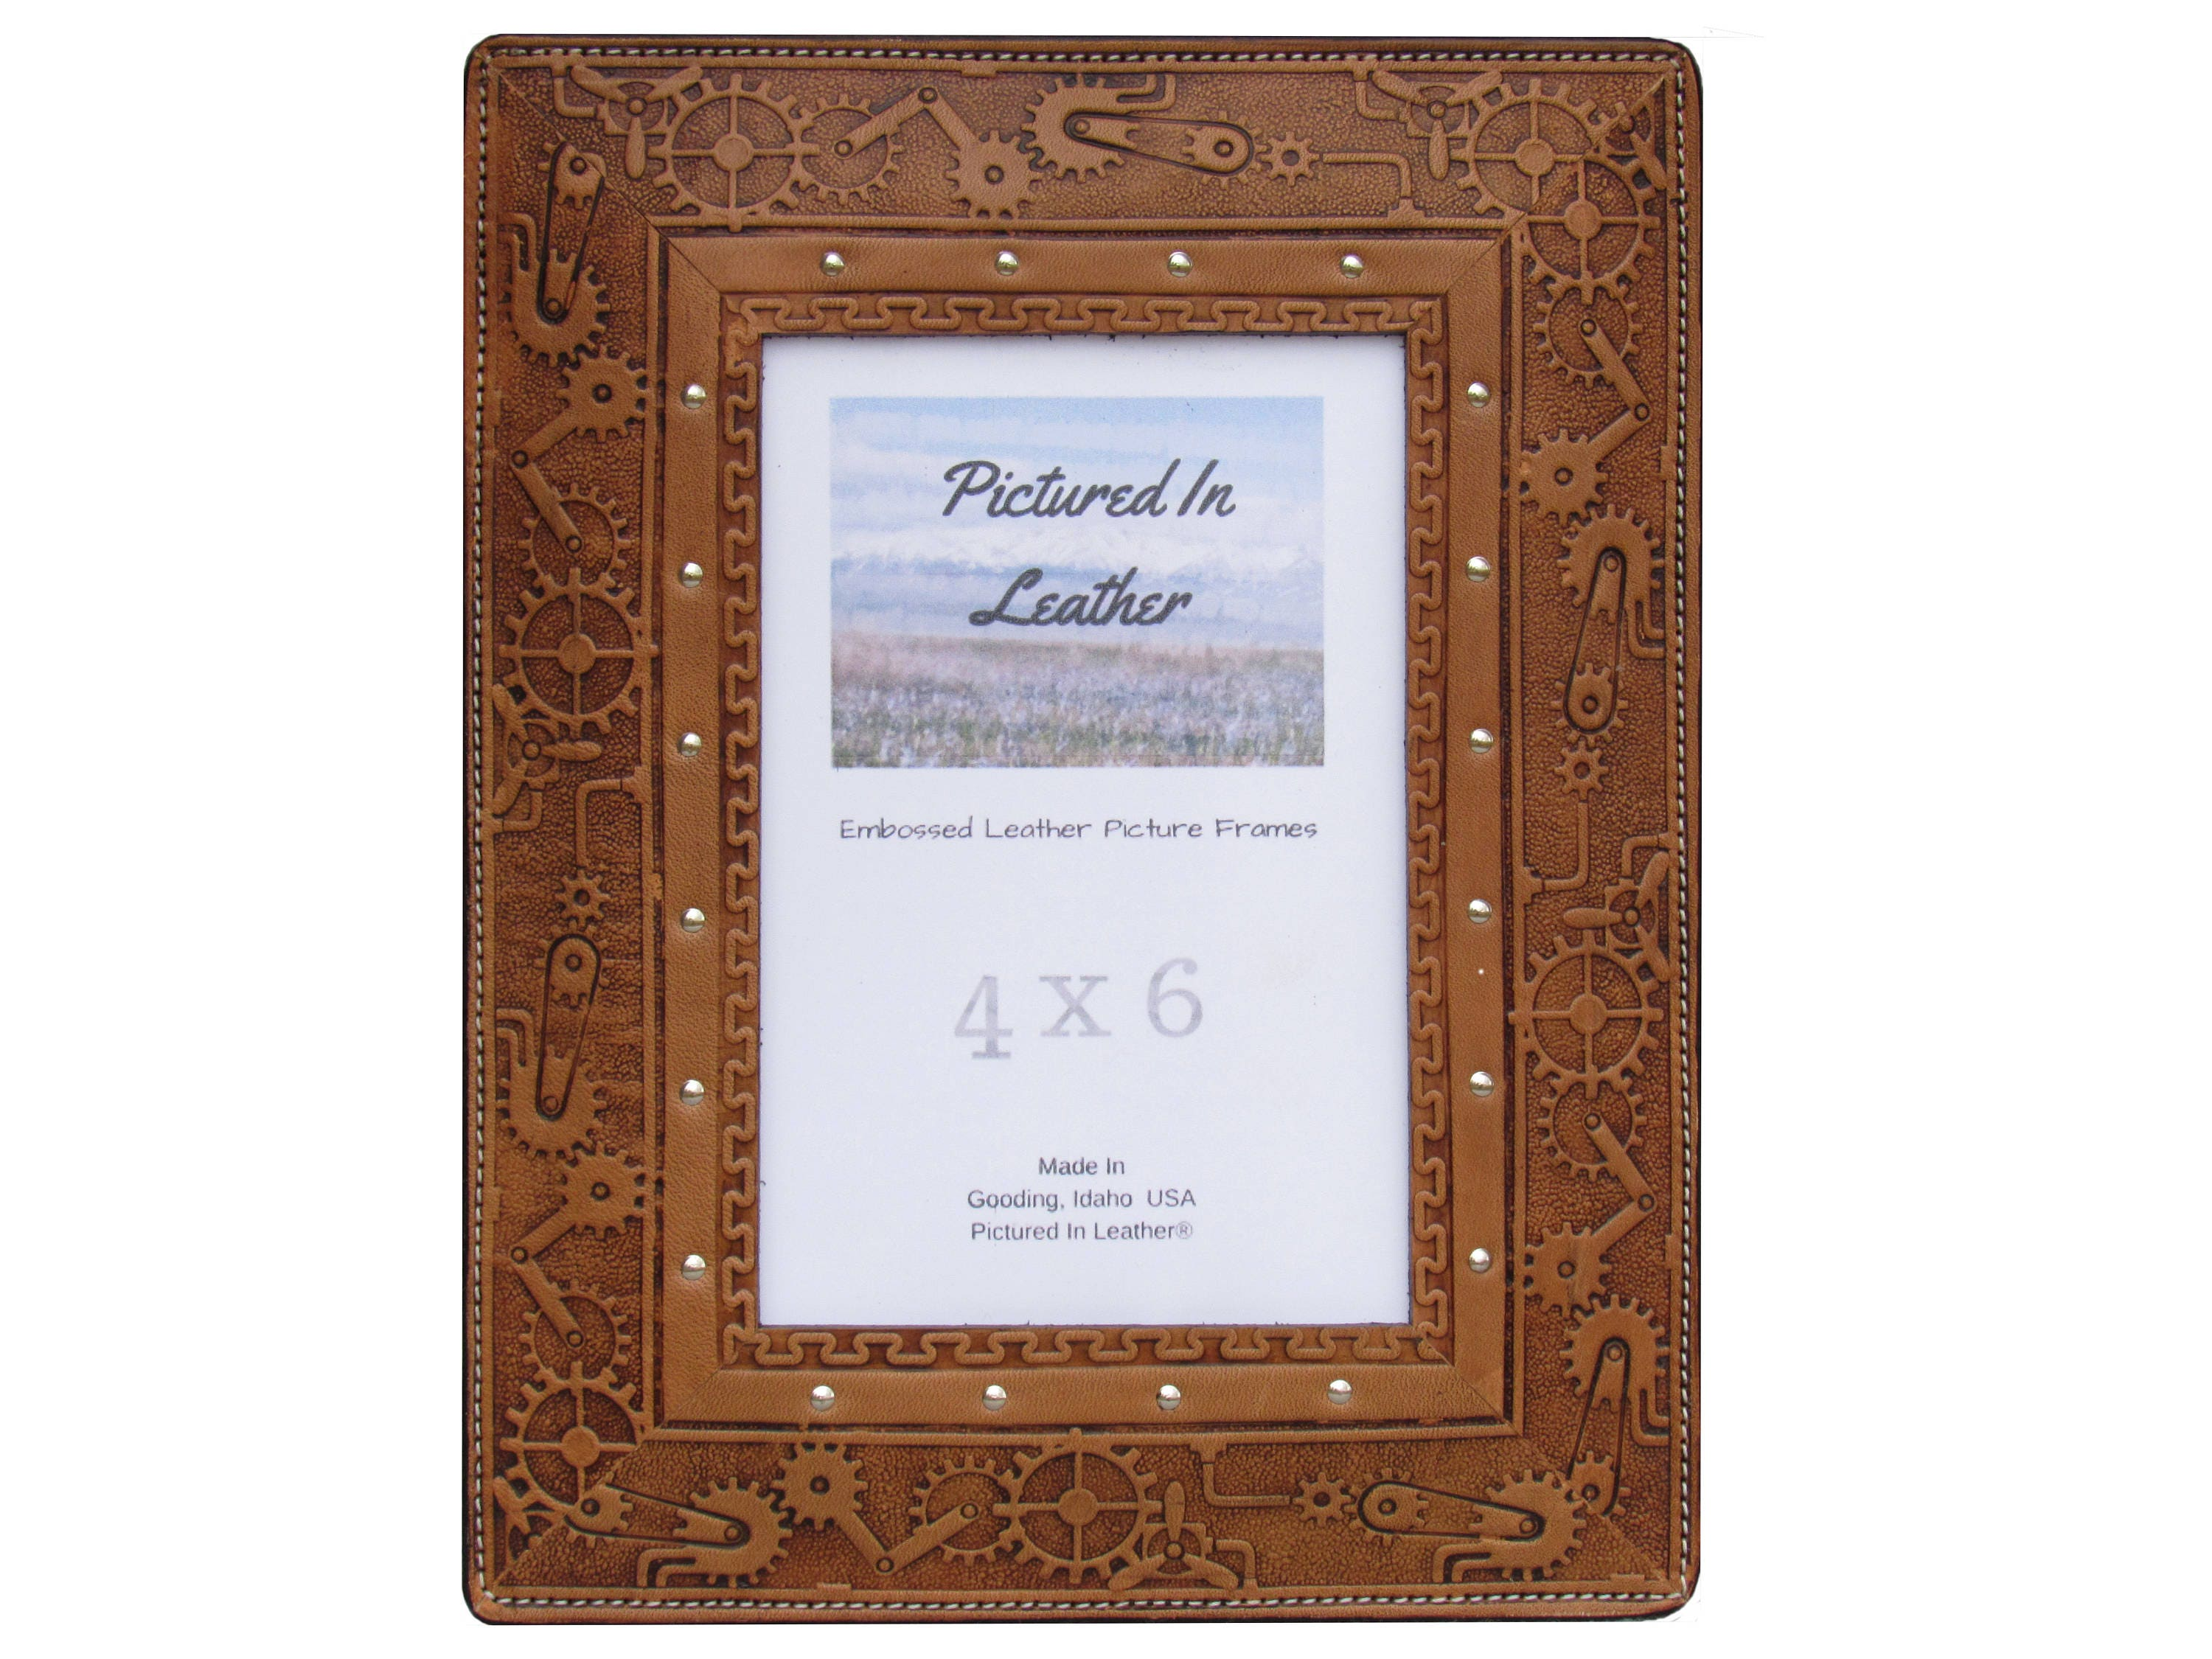 Leather picture frame 4x6 light brown embossed steampunk design leather picture frame 4x6 light brown embossed steampunk design steampunk picture frame leather steampunk photo frame ready to ship jeuxipadfo Image collections